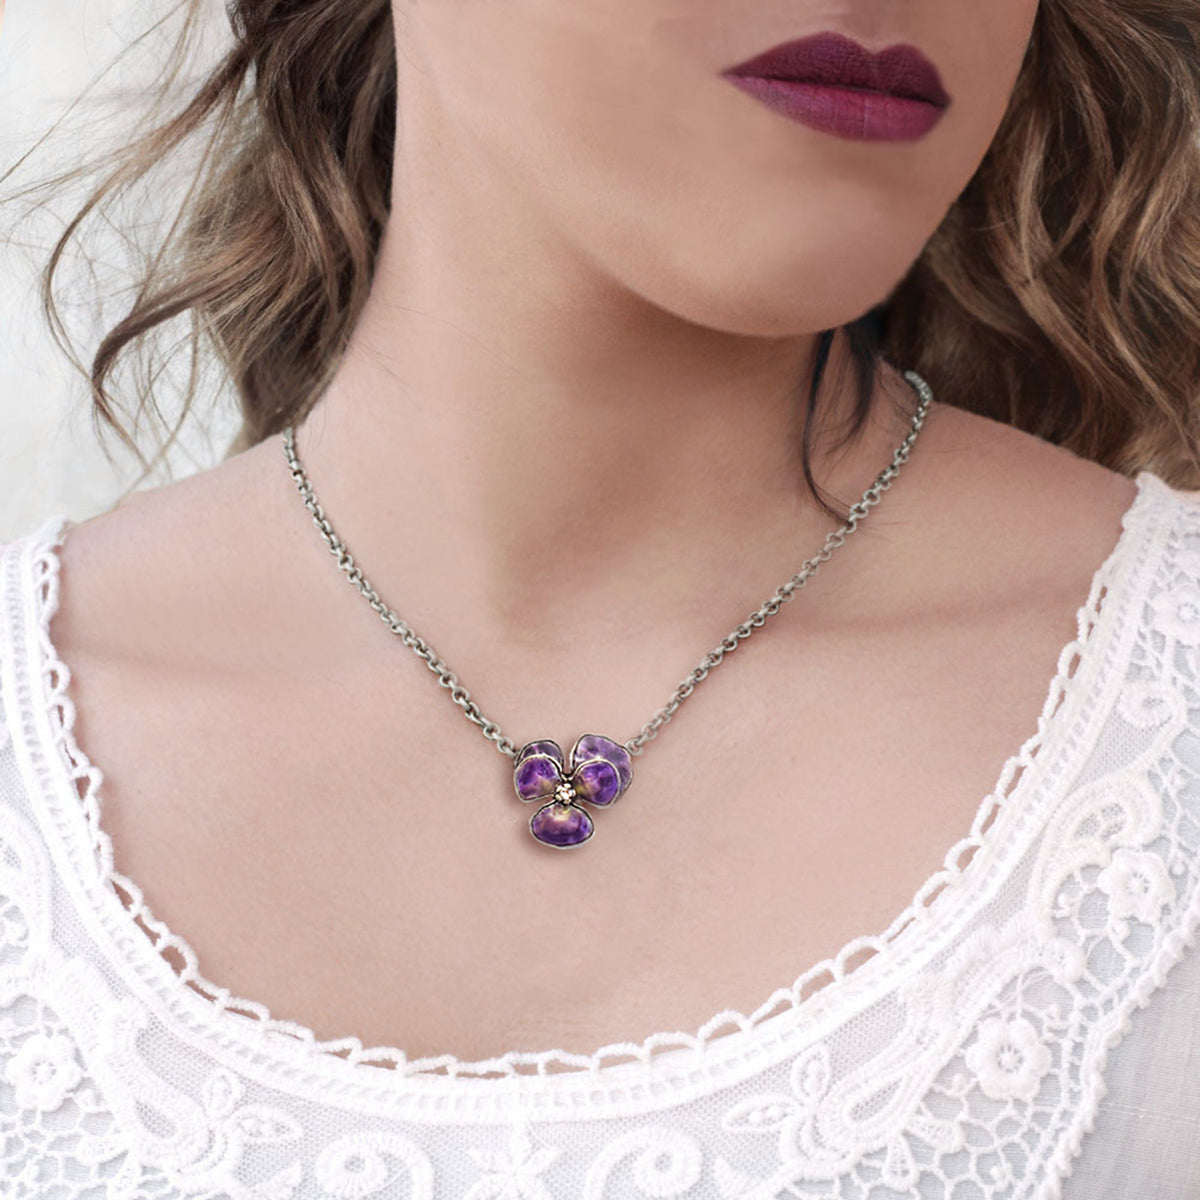 Vintage Enamel Pansy Necklace N1590 - Sweet Romance Wholesale